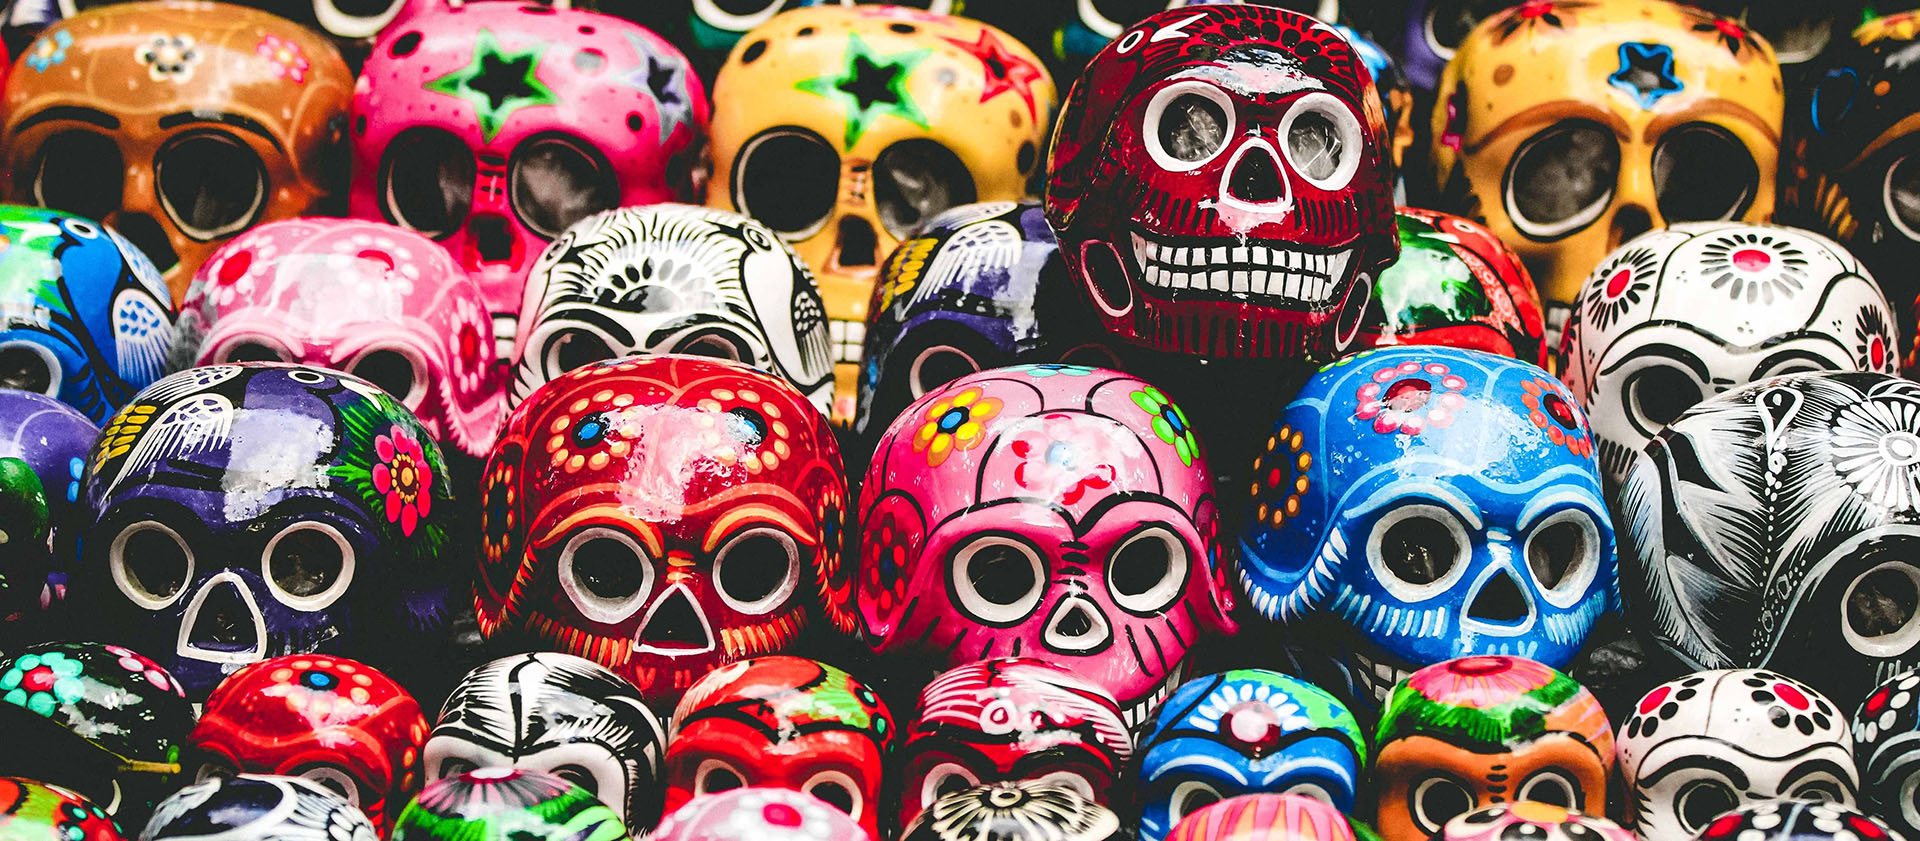 North America US New Mexico Santa Fe Dia de los Muertos painted skulls - luxury vacation destinations